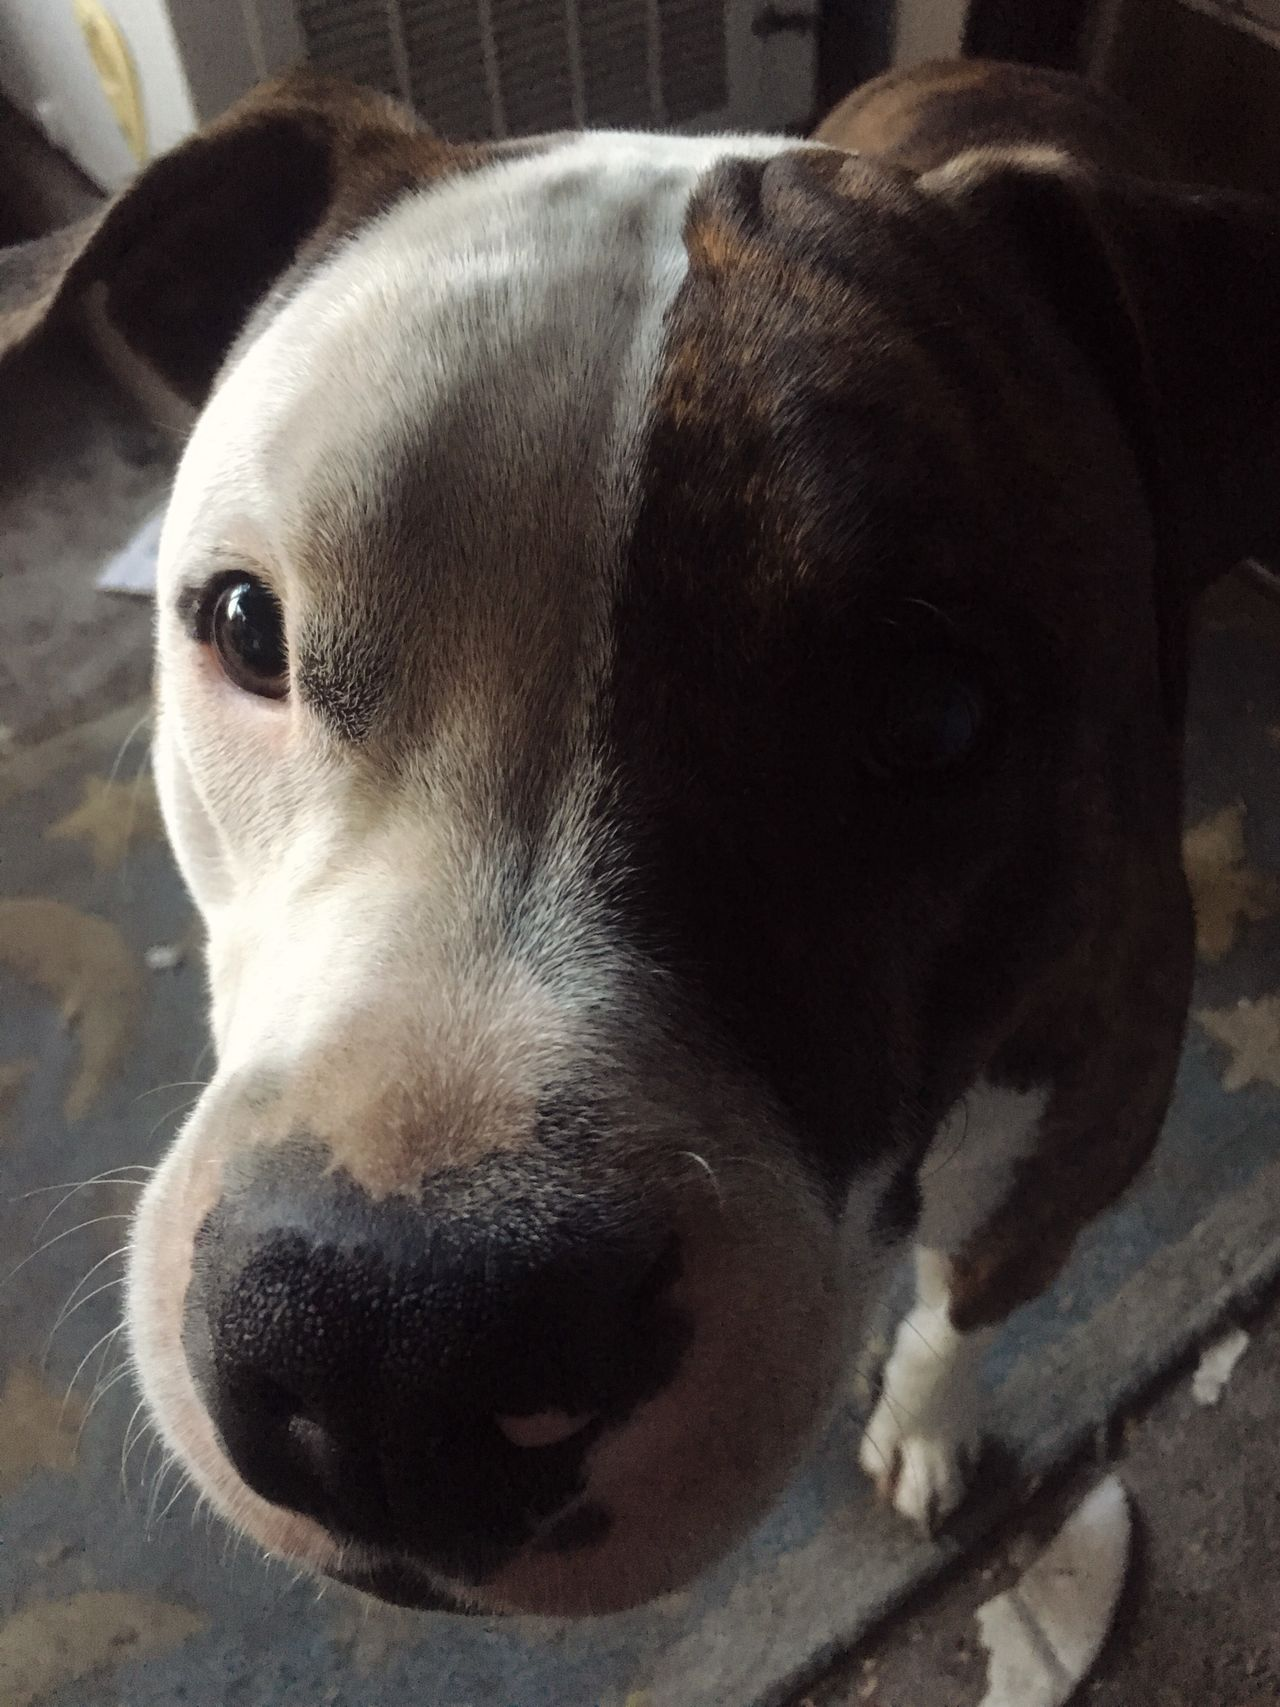 JAX Pit Bulls Dogs Being Dogs...... Pets Pets Of Eyeem Puppy I Love Pitbulls Stop Breed Discrimination Adopt Emotional One Of My Favorite Things Mans Best Friend EyeEm Doglife Dog Pit Pitbulllove